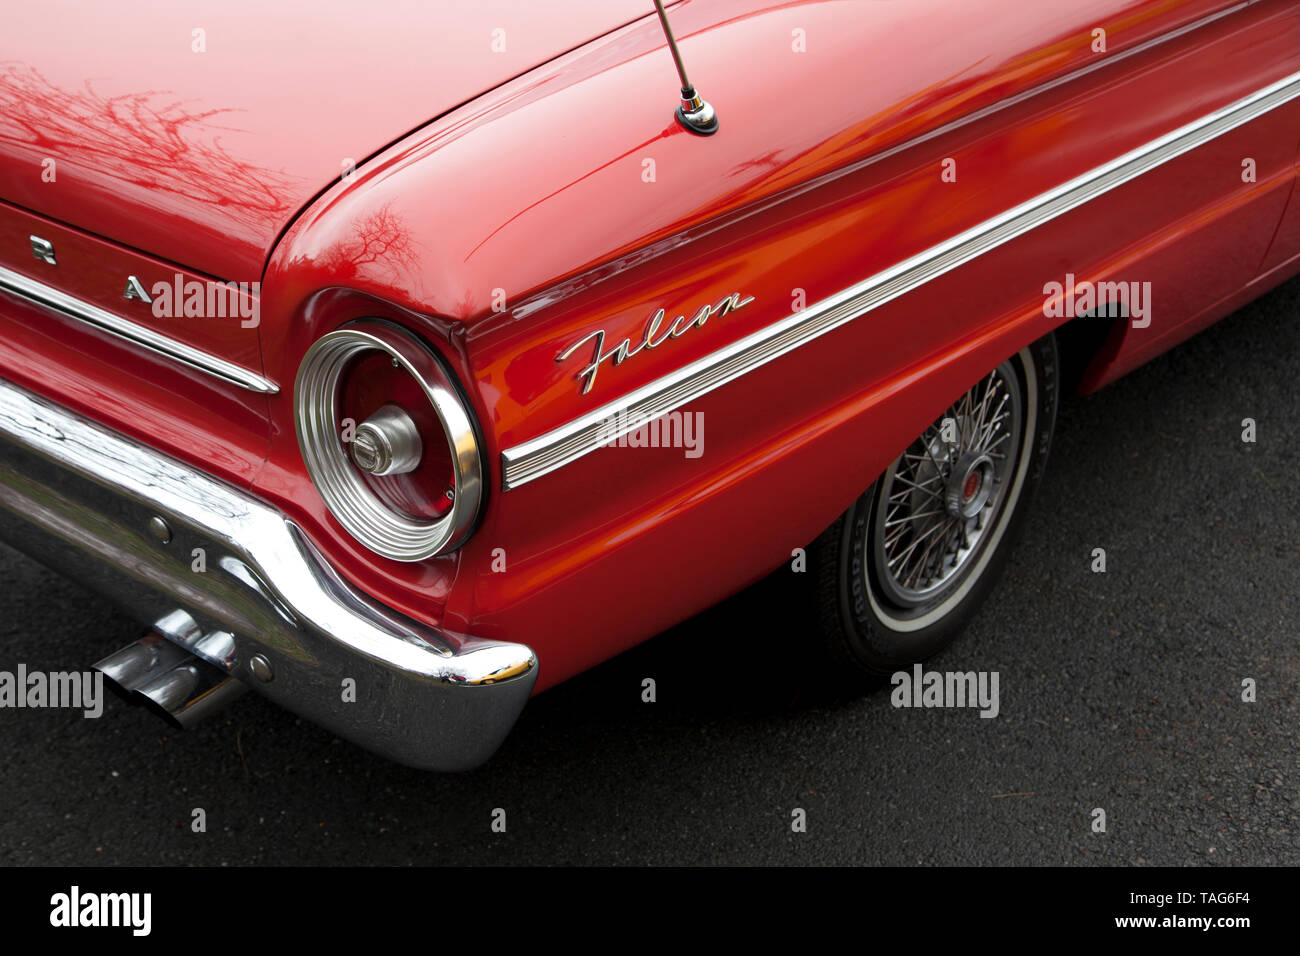 Ford Falcon Stock Photos & Ford Falcon Stock Images - Alamy